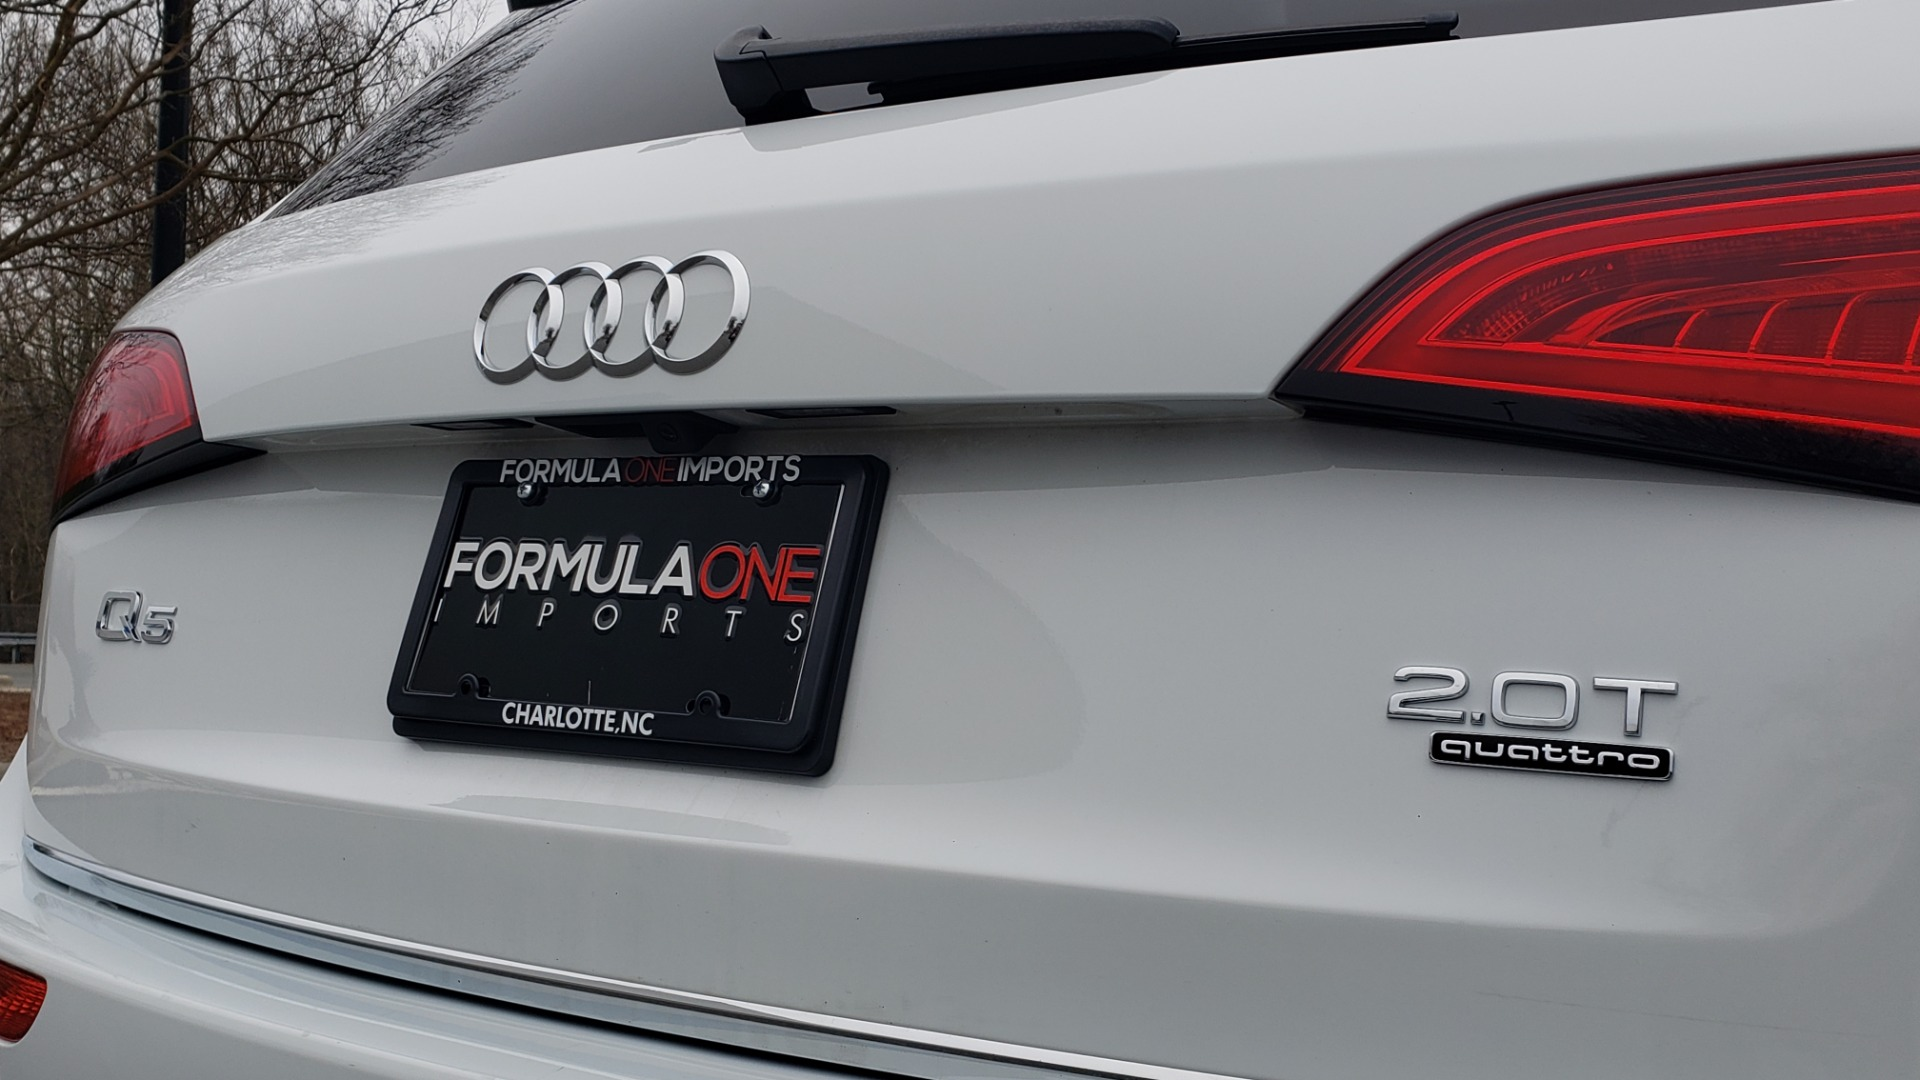 Used 2017 Audi Q5 PREMIUM PLUS / TECH / NAV / PANO-ROOF / B&O SND / REARVIEW for sale Sold at Formula Imports in Charlotte NC 28227 34